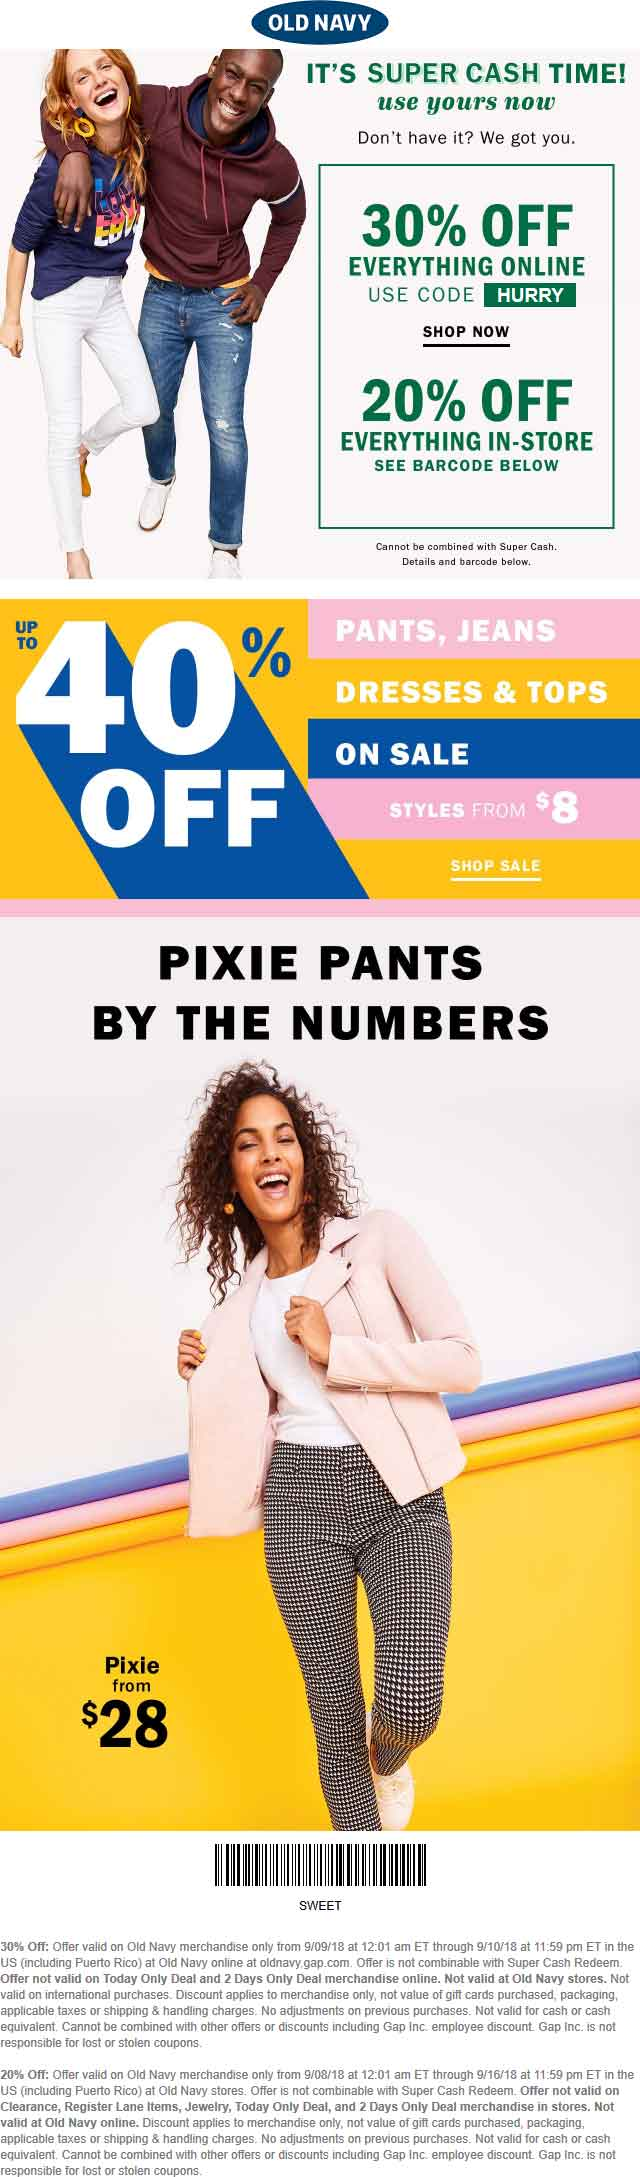 Old Navy Coupon May 2019 20% off everything at Old Navy, or 30% online via promo code HURRY